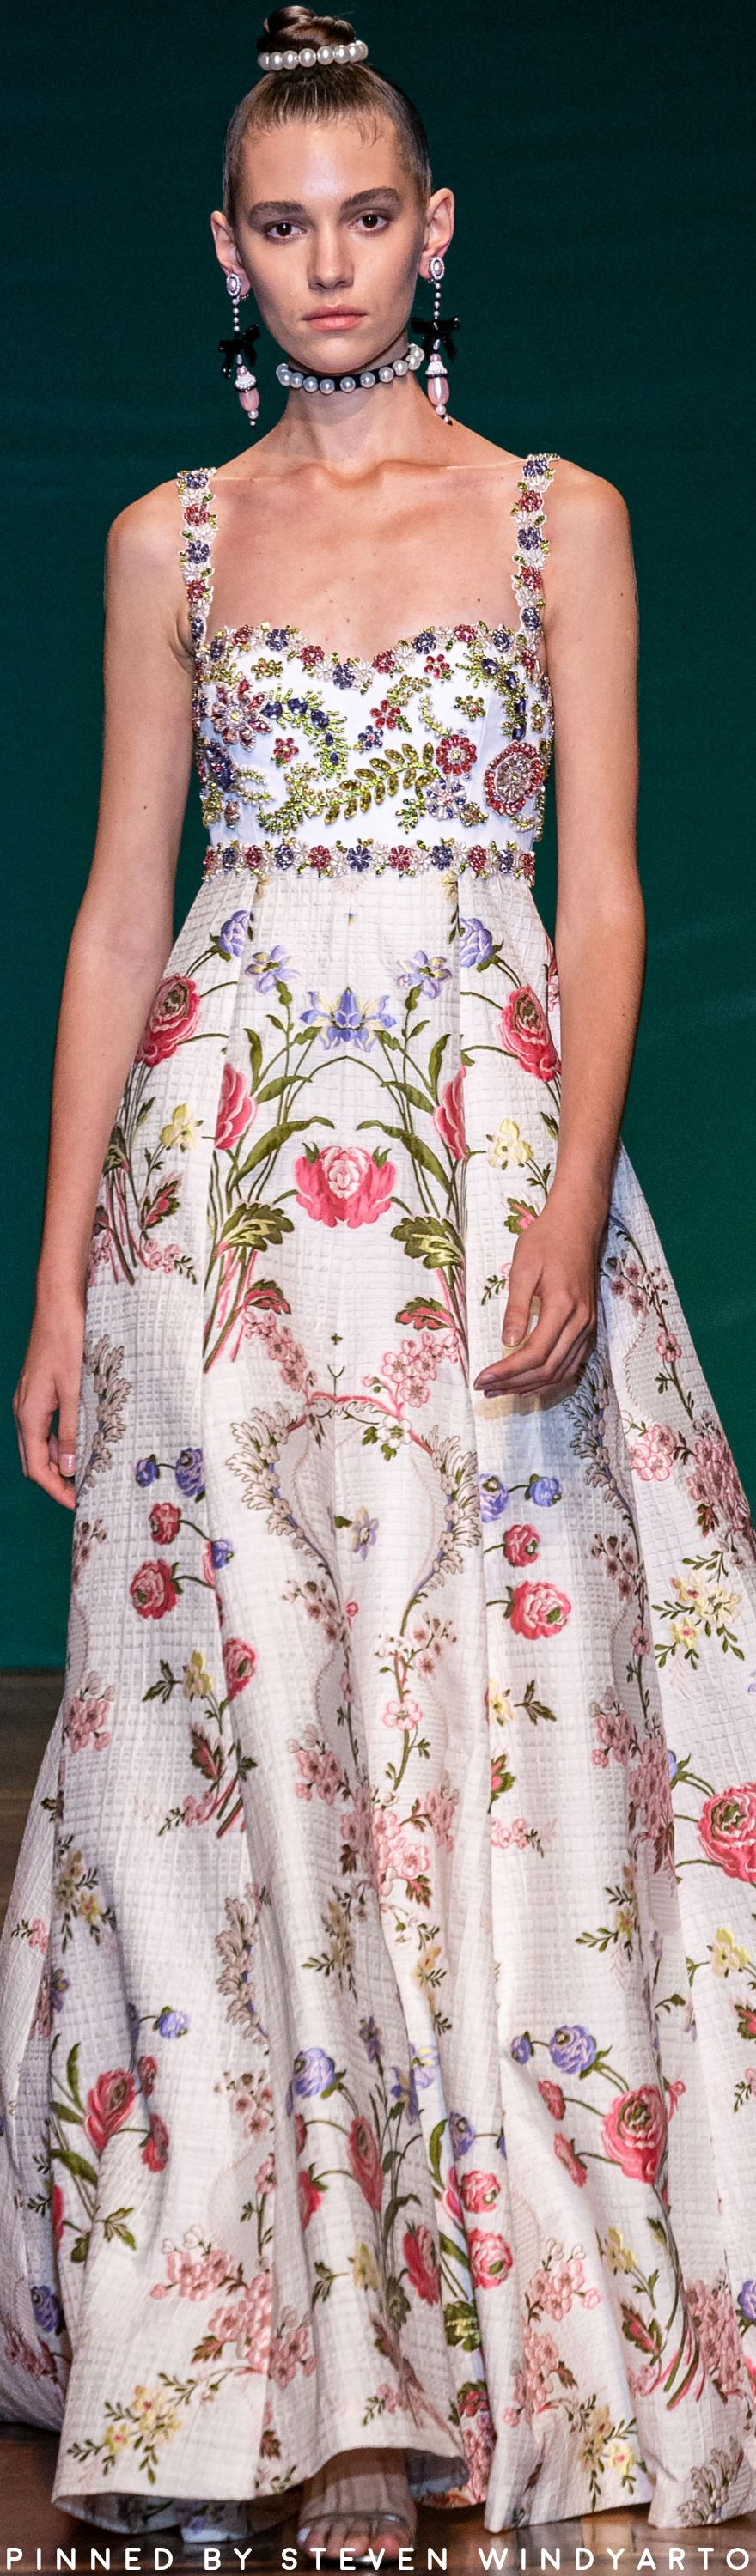 Andrew Gn Spring 2020  #fancydress